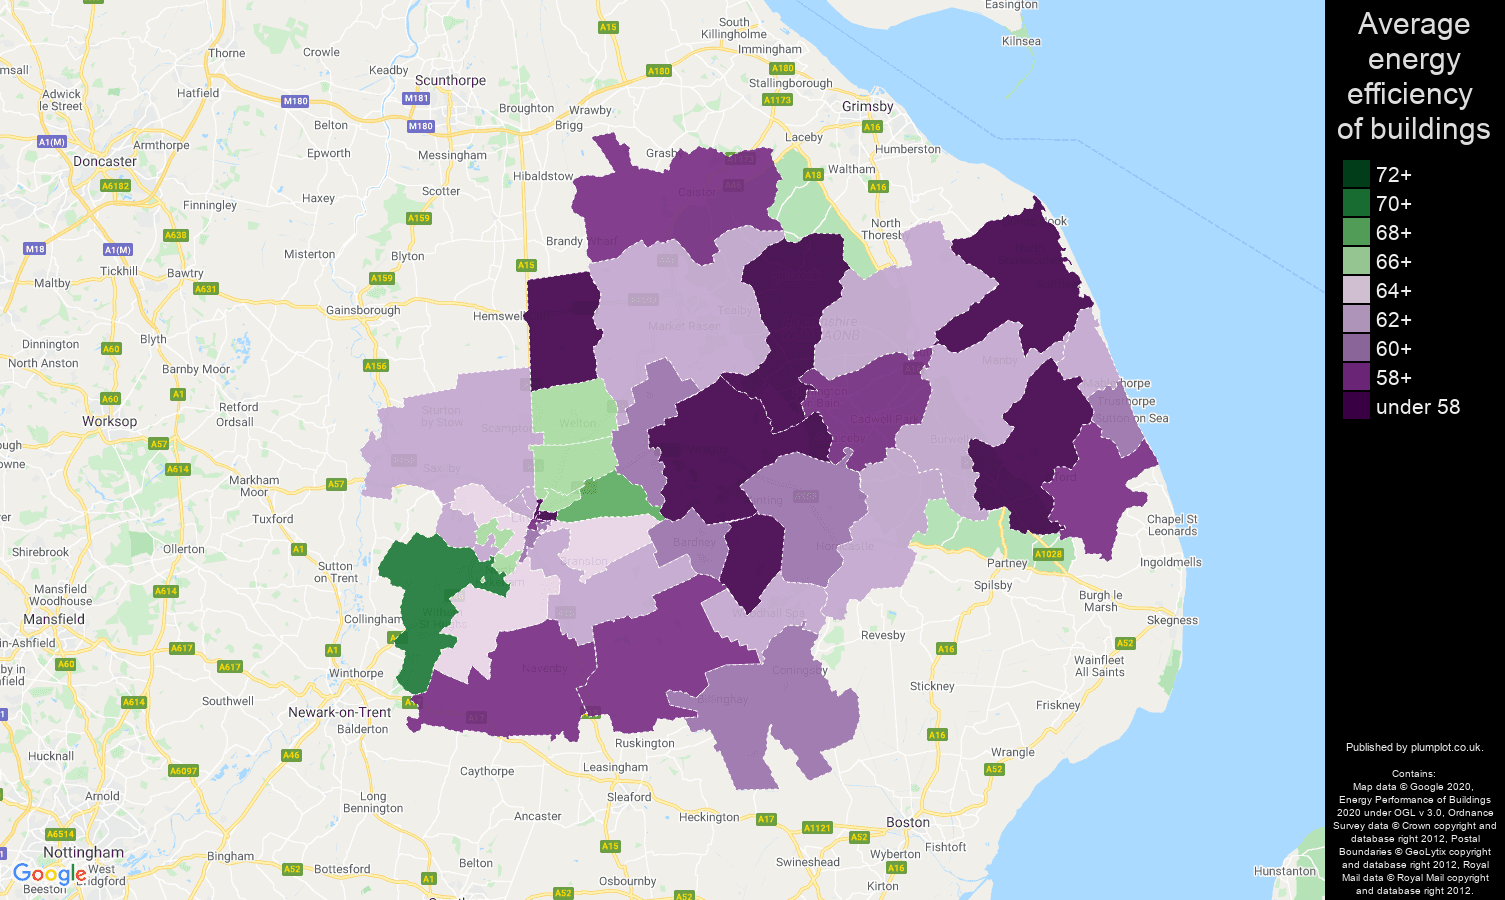 Lincoln map of energy efficiency of houses